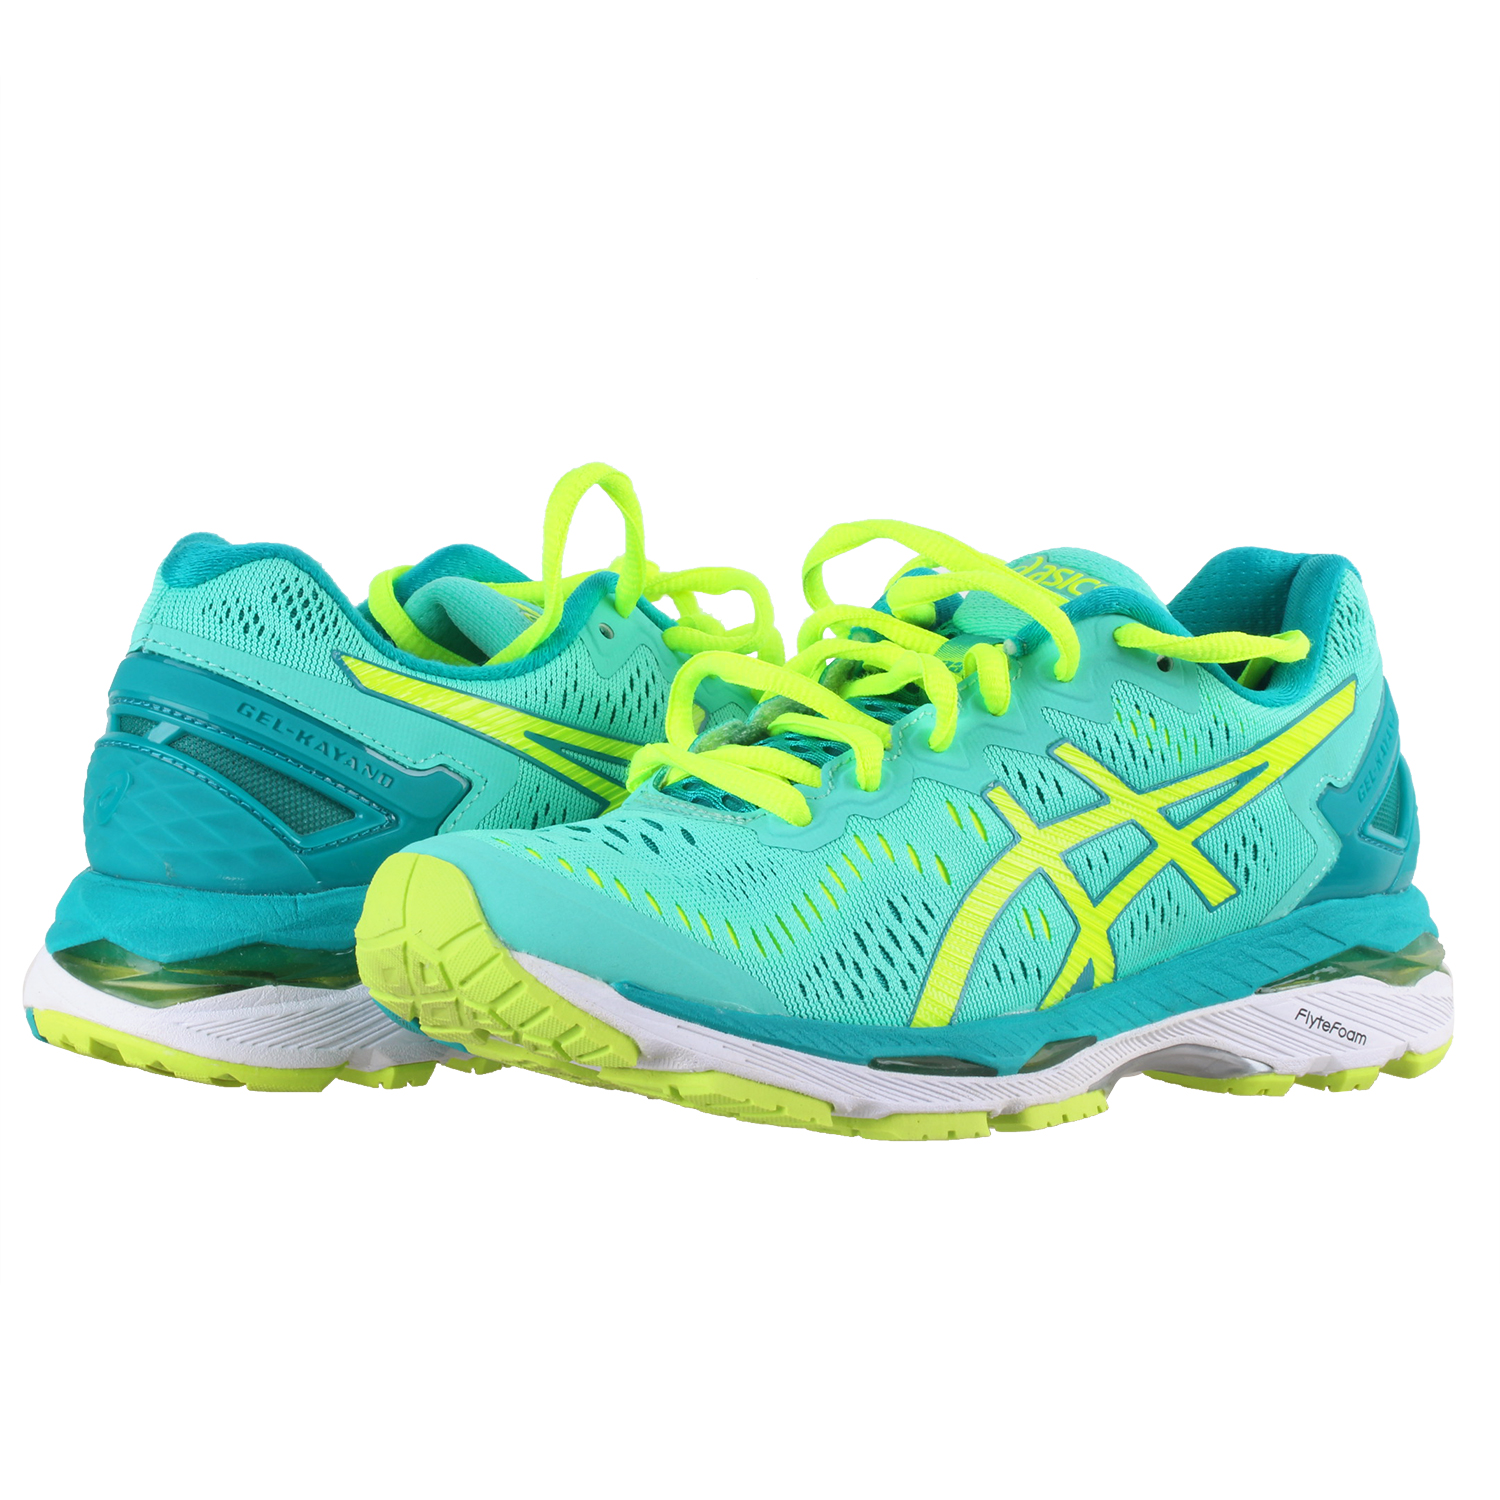 finest selection 8cde1 d00f1 Details about ASICS Women's Gel-Kayano 23 Running Shoes Cockatoo/Safety  Yellow/Lapis 6.5